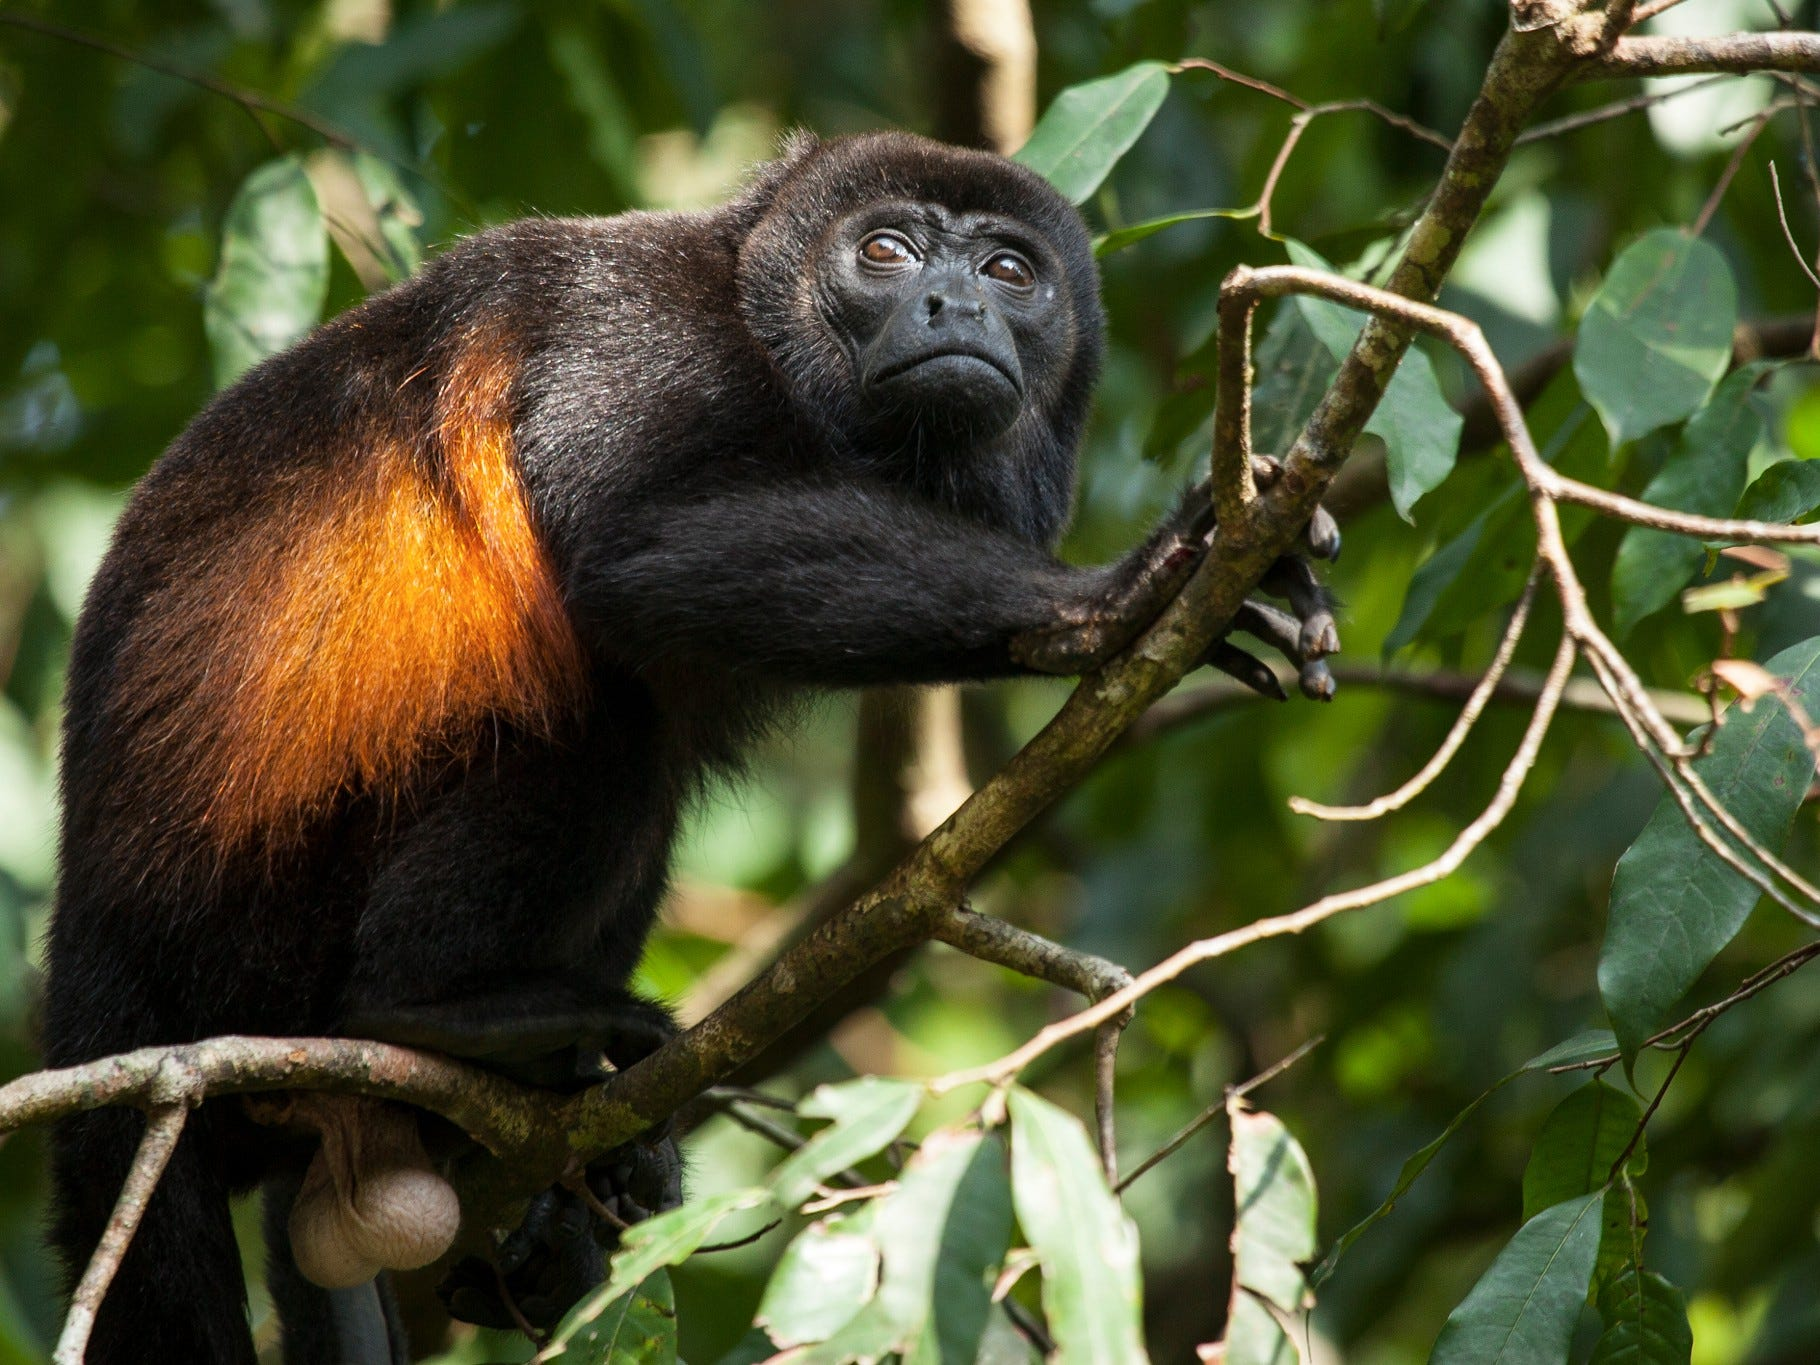 Whichever eco-lodge a traveler chooses in Costa Rica, there will be plenty of opportunities for animal interaction.